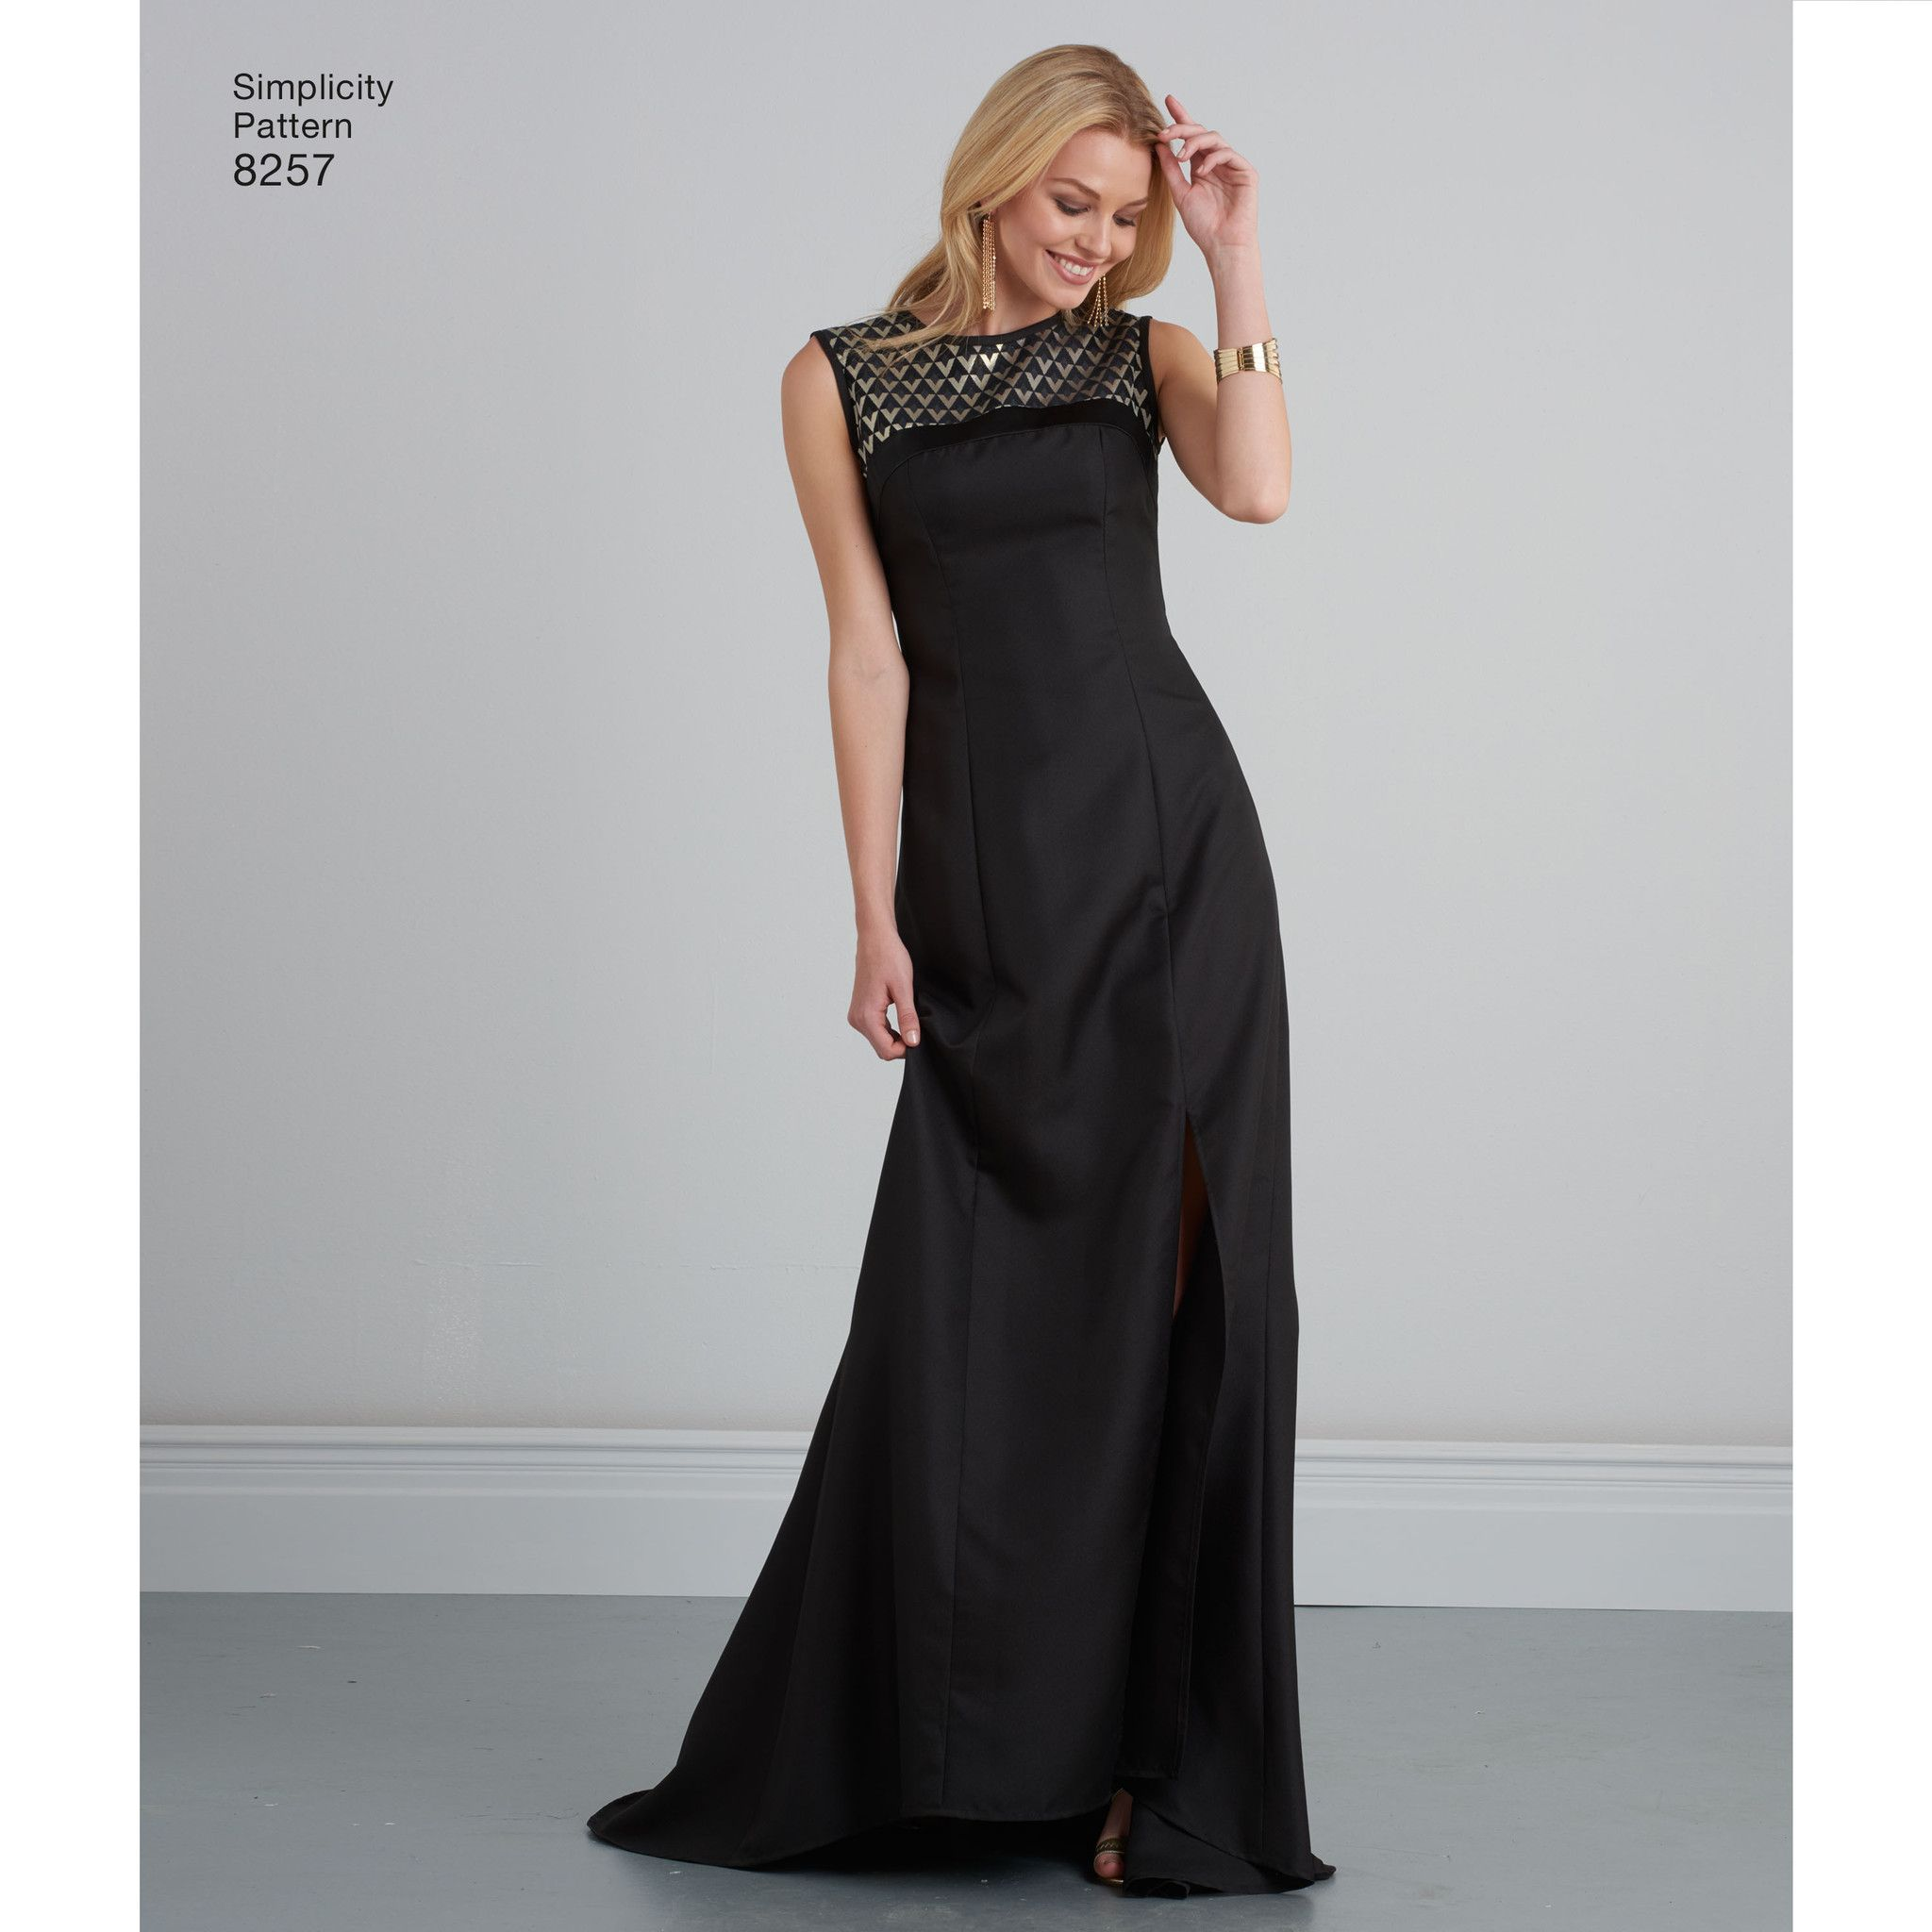 054988a1fbbb S8257 Misses  Special Occasion Dresses and gown Simplicity Pattern ...